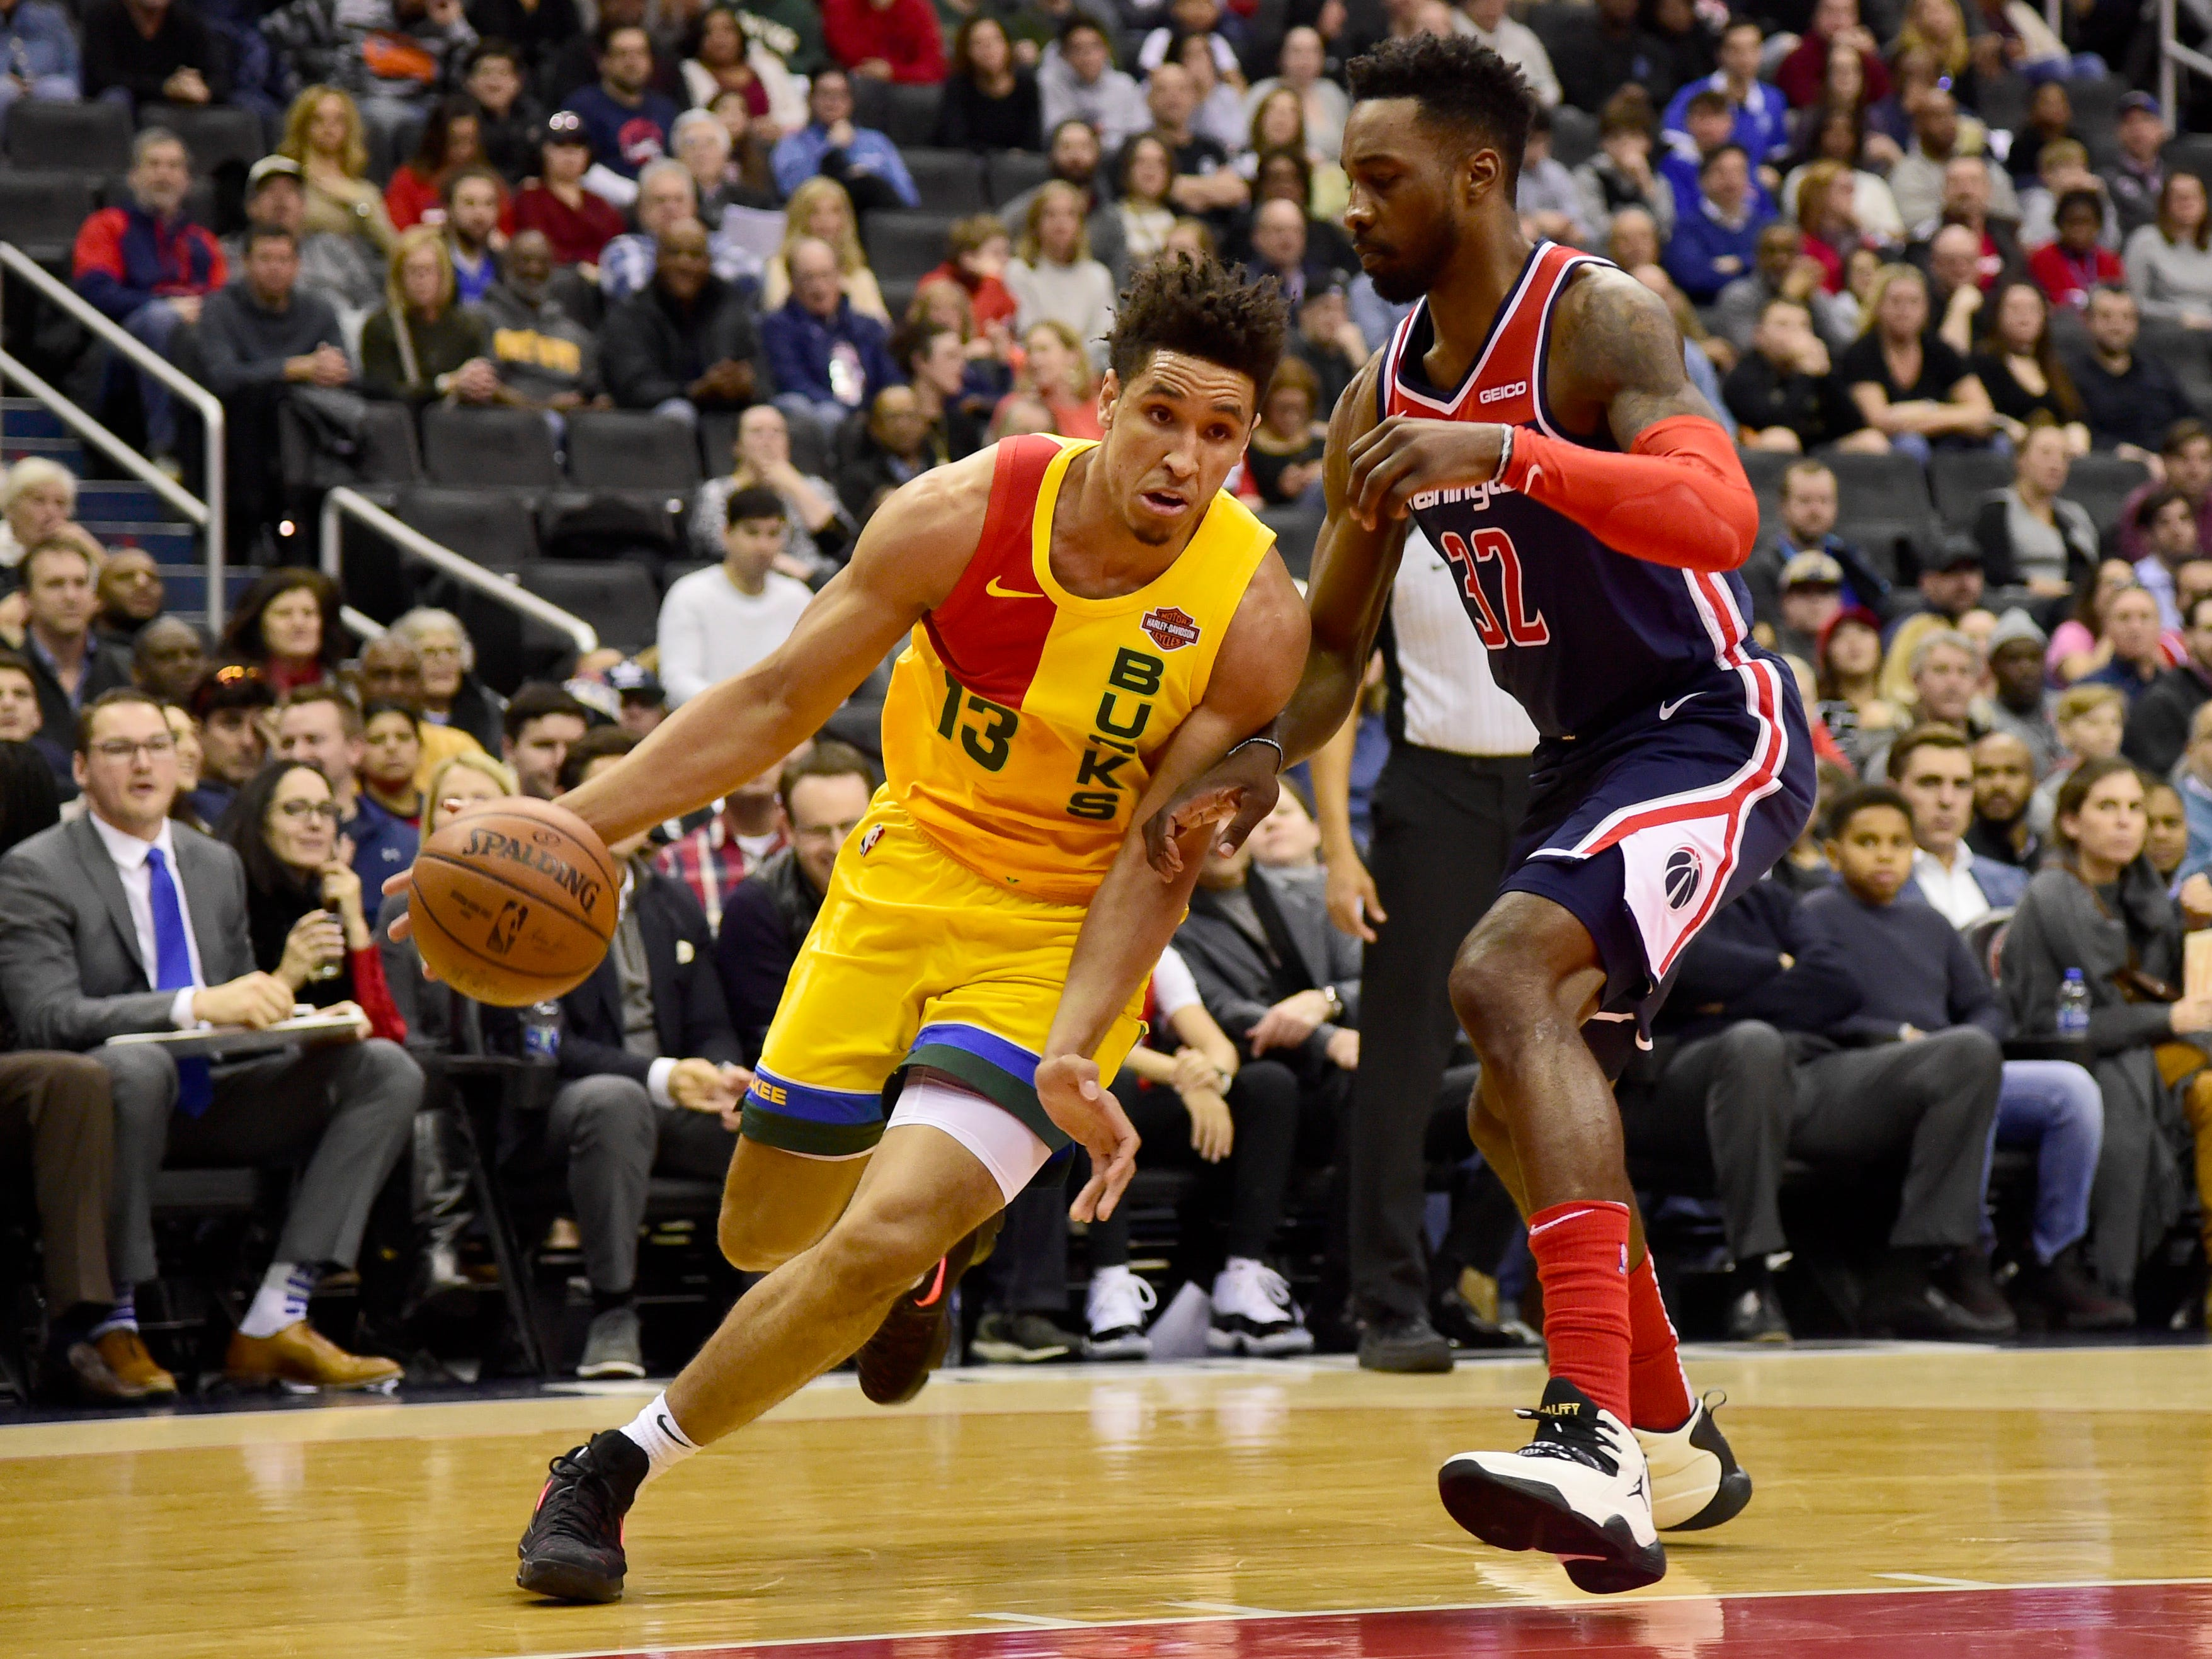 Bucks guard Malcolm Brogdon turns the corner on Wizards forward Jeff Green as he drives to the hoop during the first quarter Saturday night.